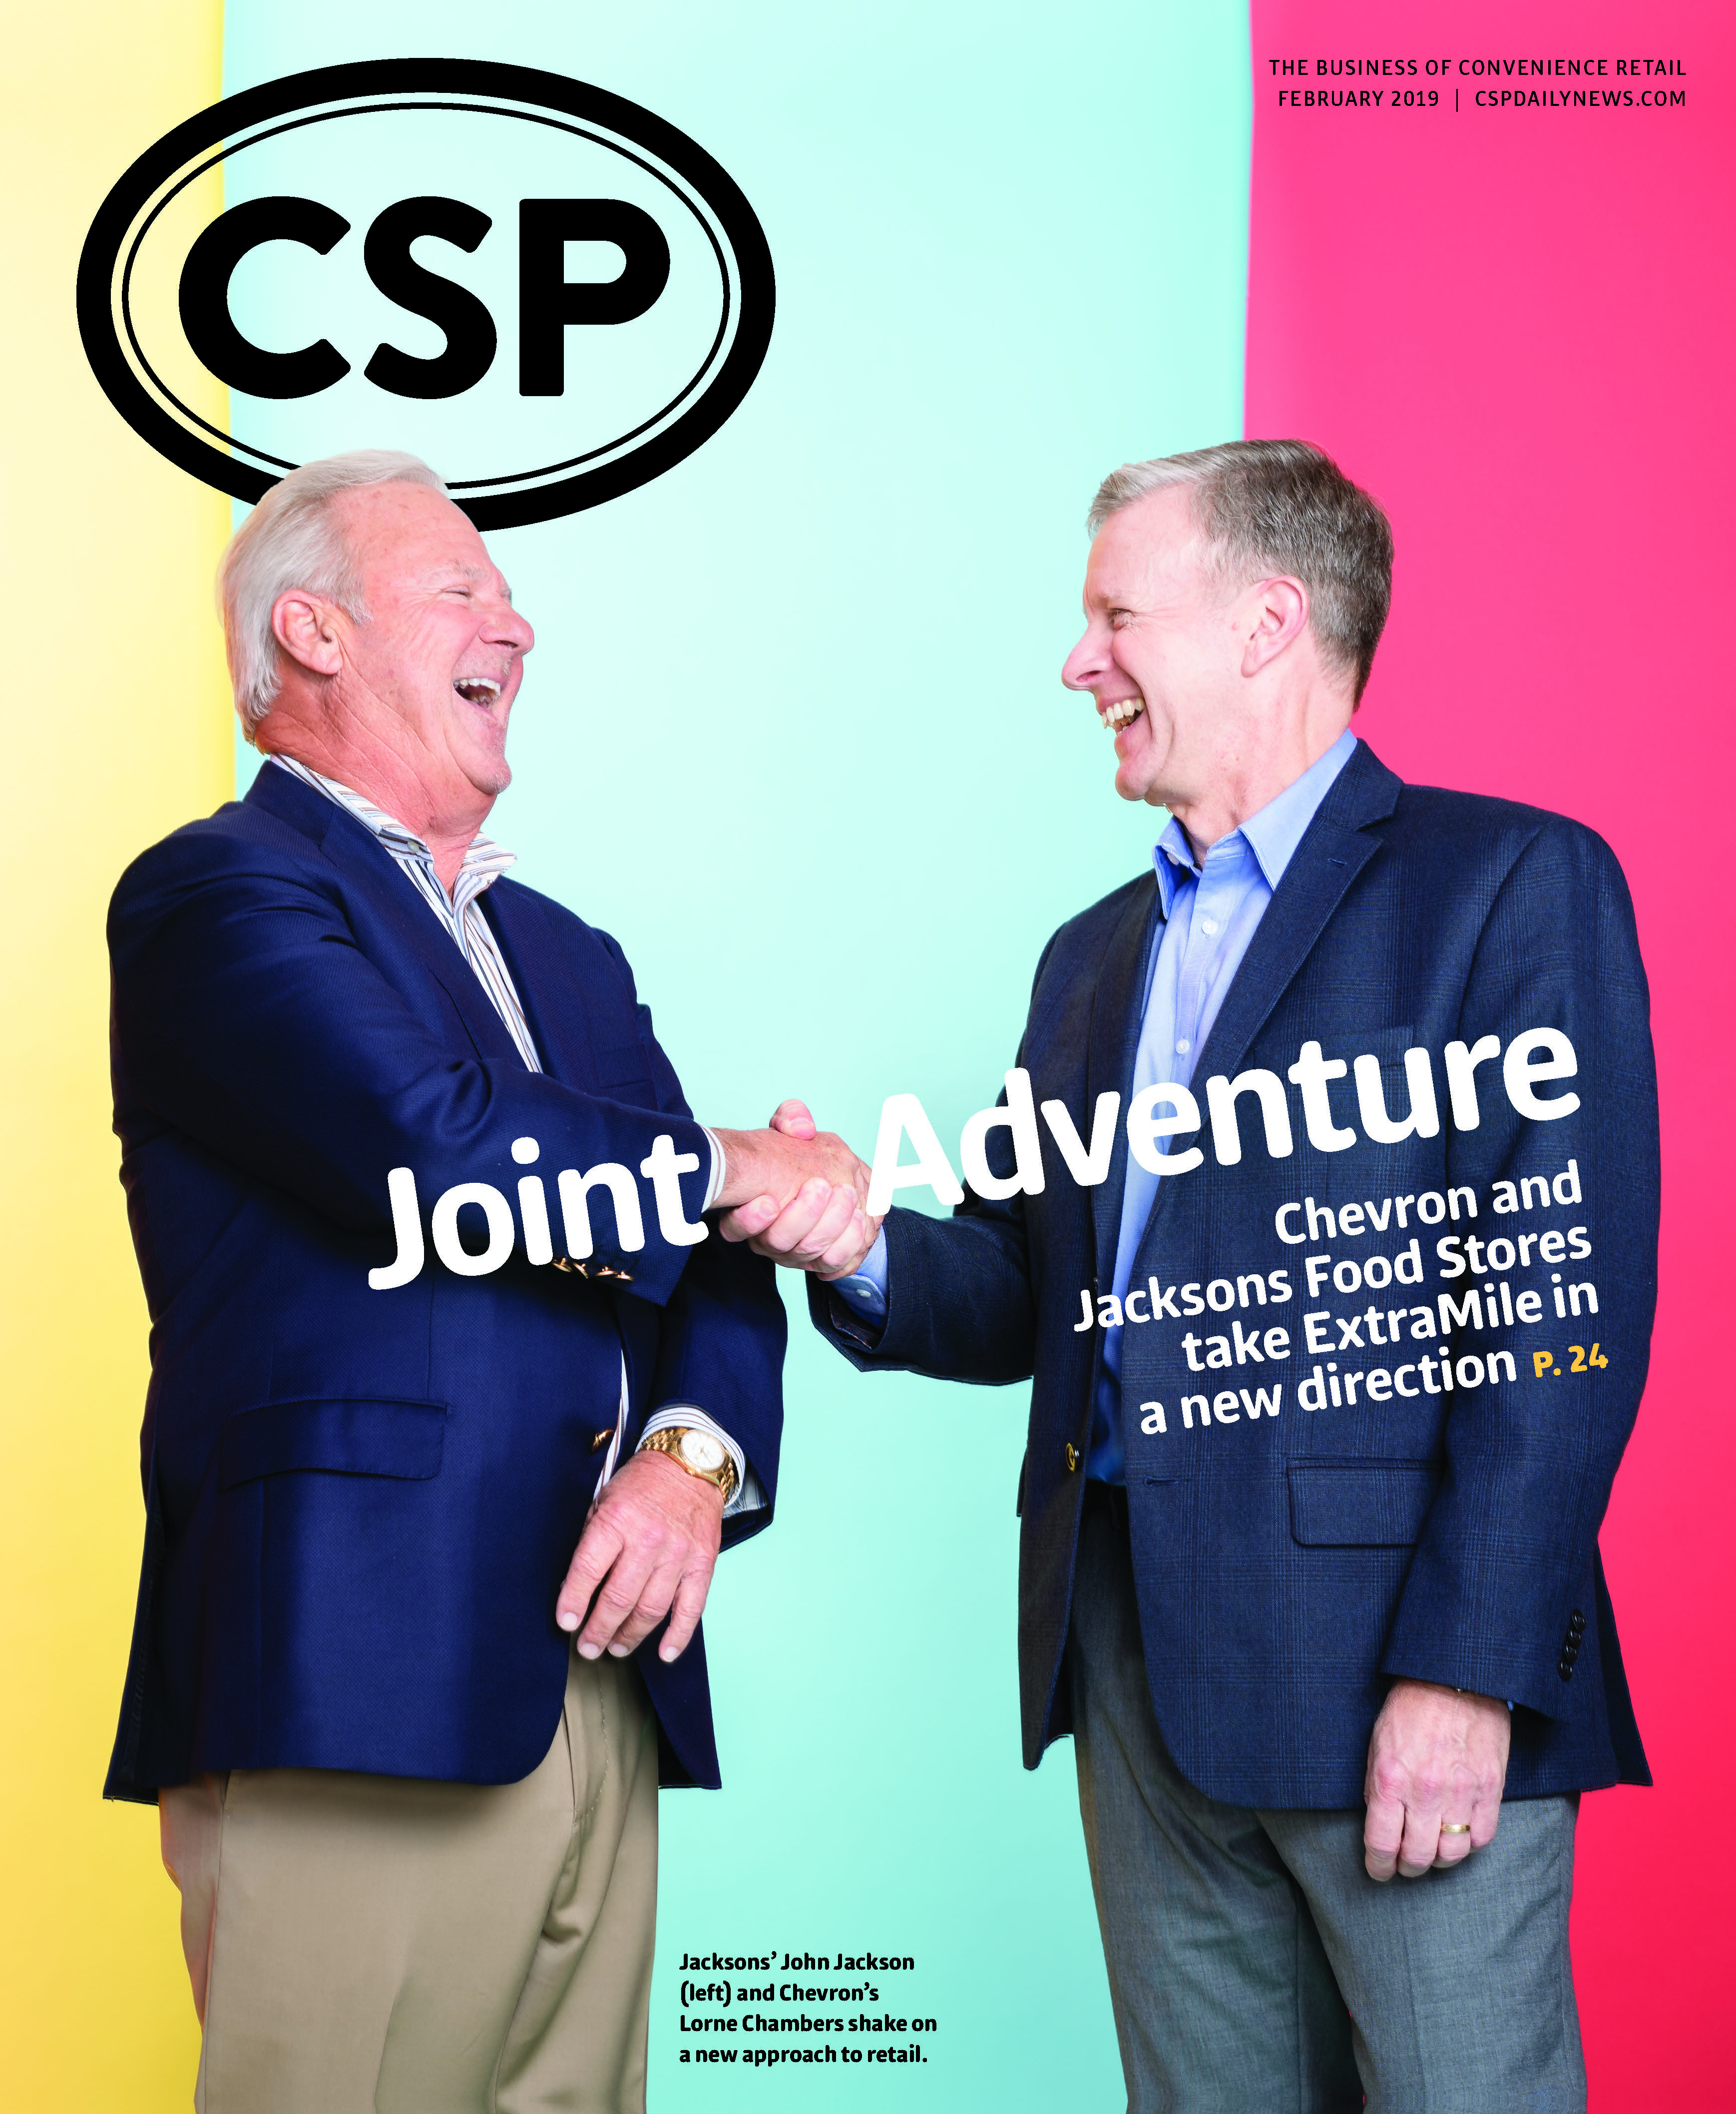 CSP Daily News February 2019 Issue